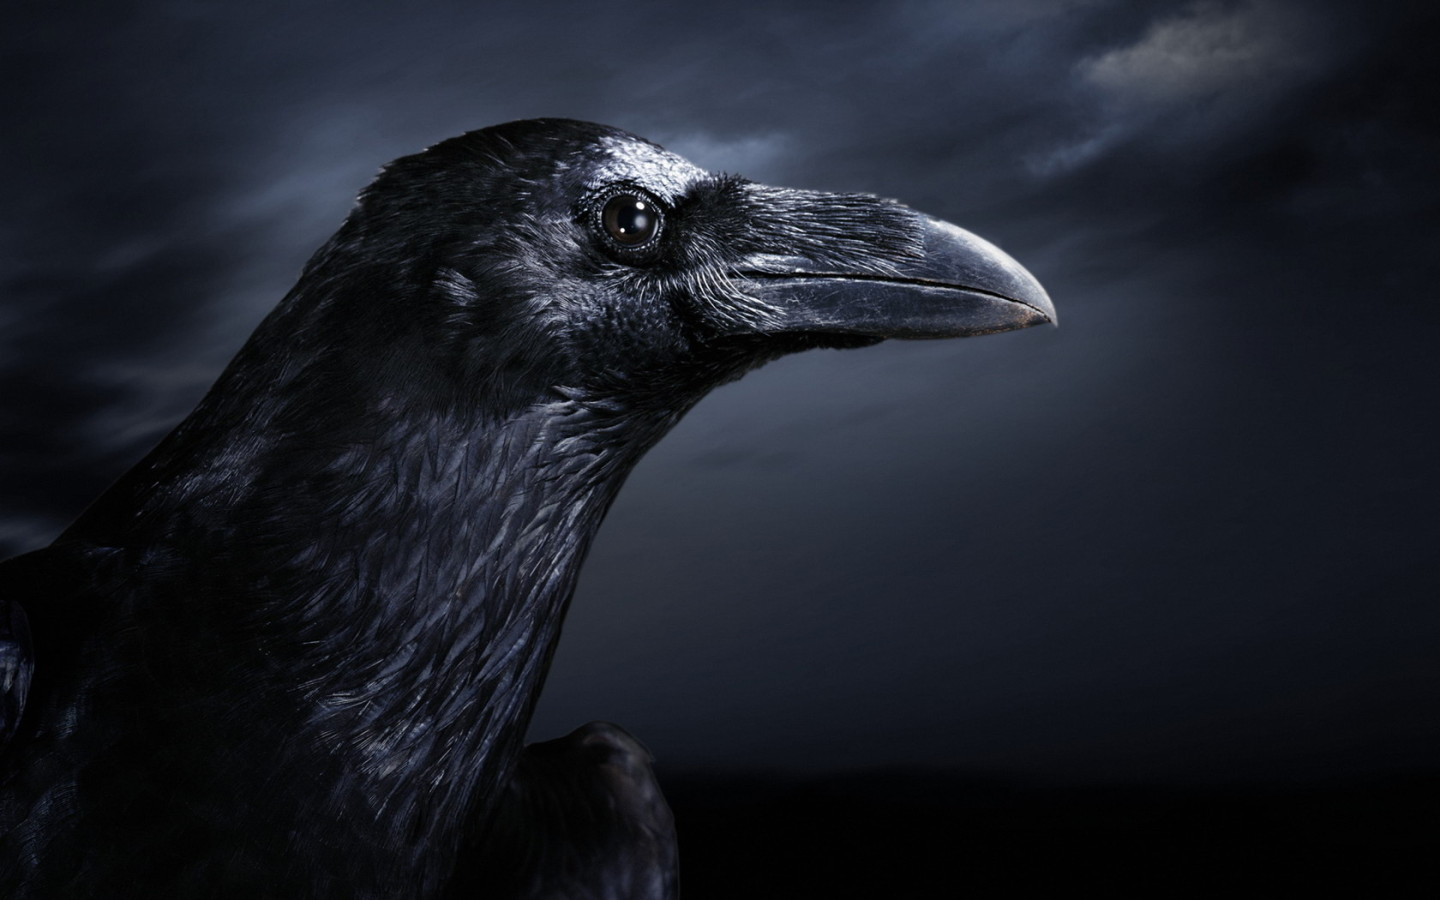 Google Image Result for http://www.zastavki.com/pictures/1440x900/2011/Animals_Birds_Raven_027484_.jpg